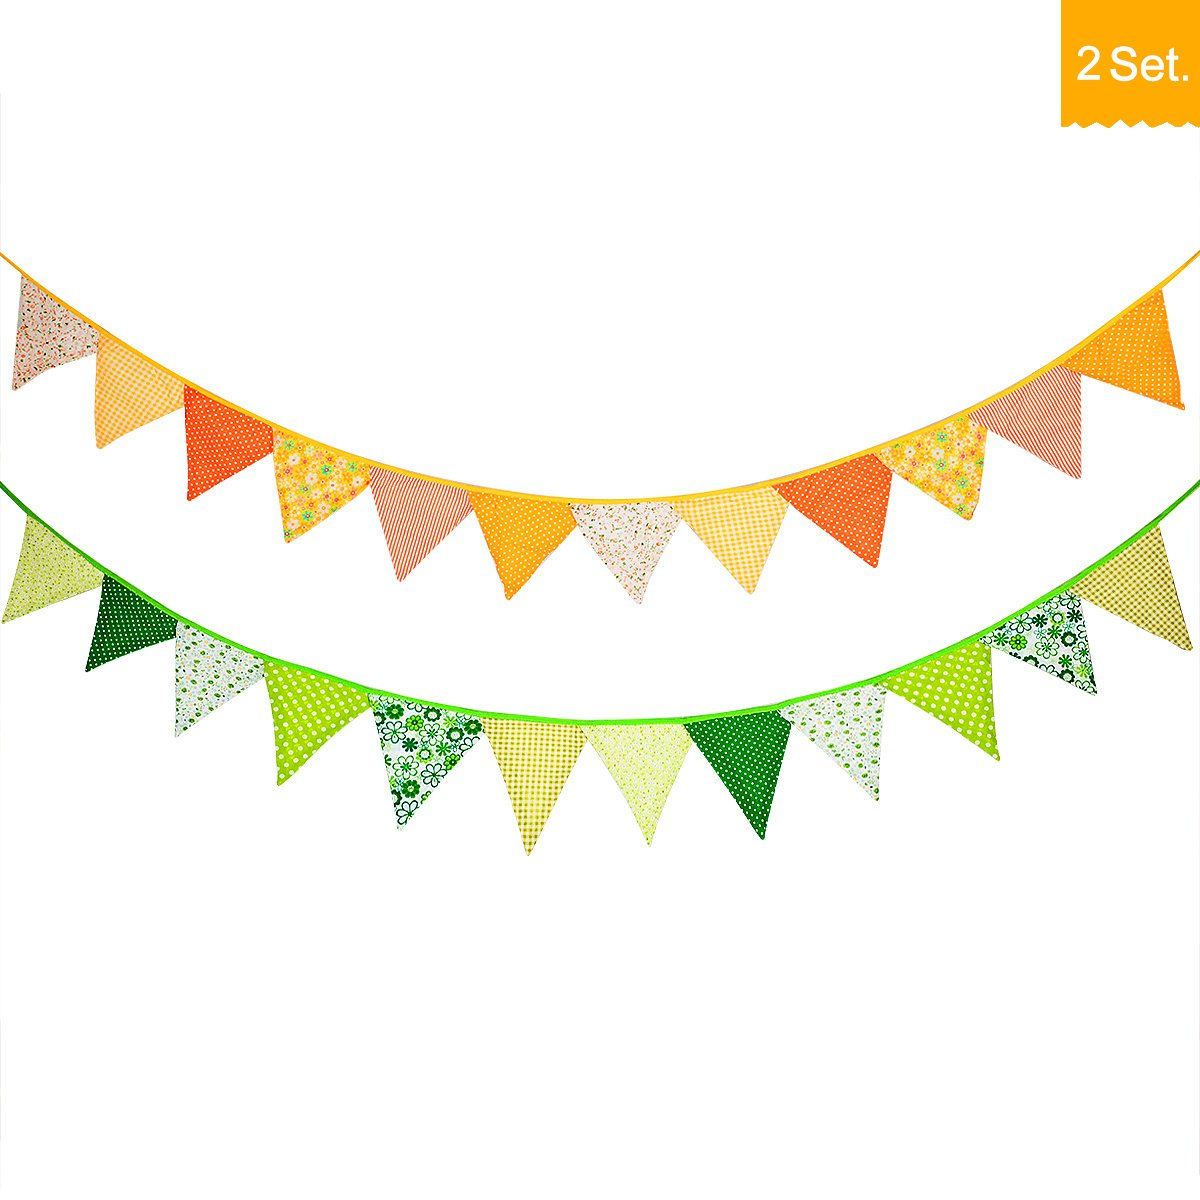 24 Pcs/18 Feet Fabric Banner,Colored Pennant Flag,Vintage Triangle Bunting, Hanging Cotton Garland for Baby Birthday Shower, Wedding,Spring Theme Party,Window Decorations(Yellow and Green)